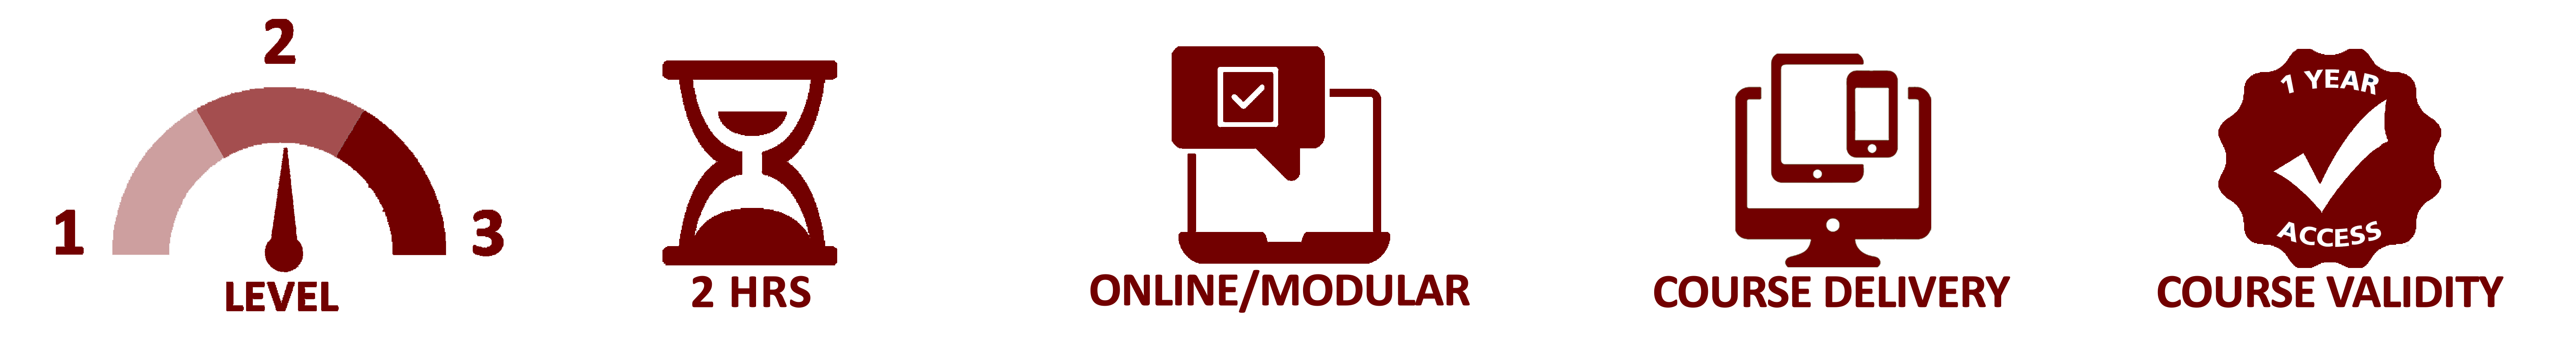 Safeguarding Adults and Children - E-Learning Courses - Mandatory Compliance UK -